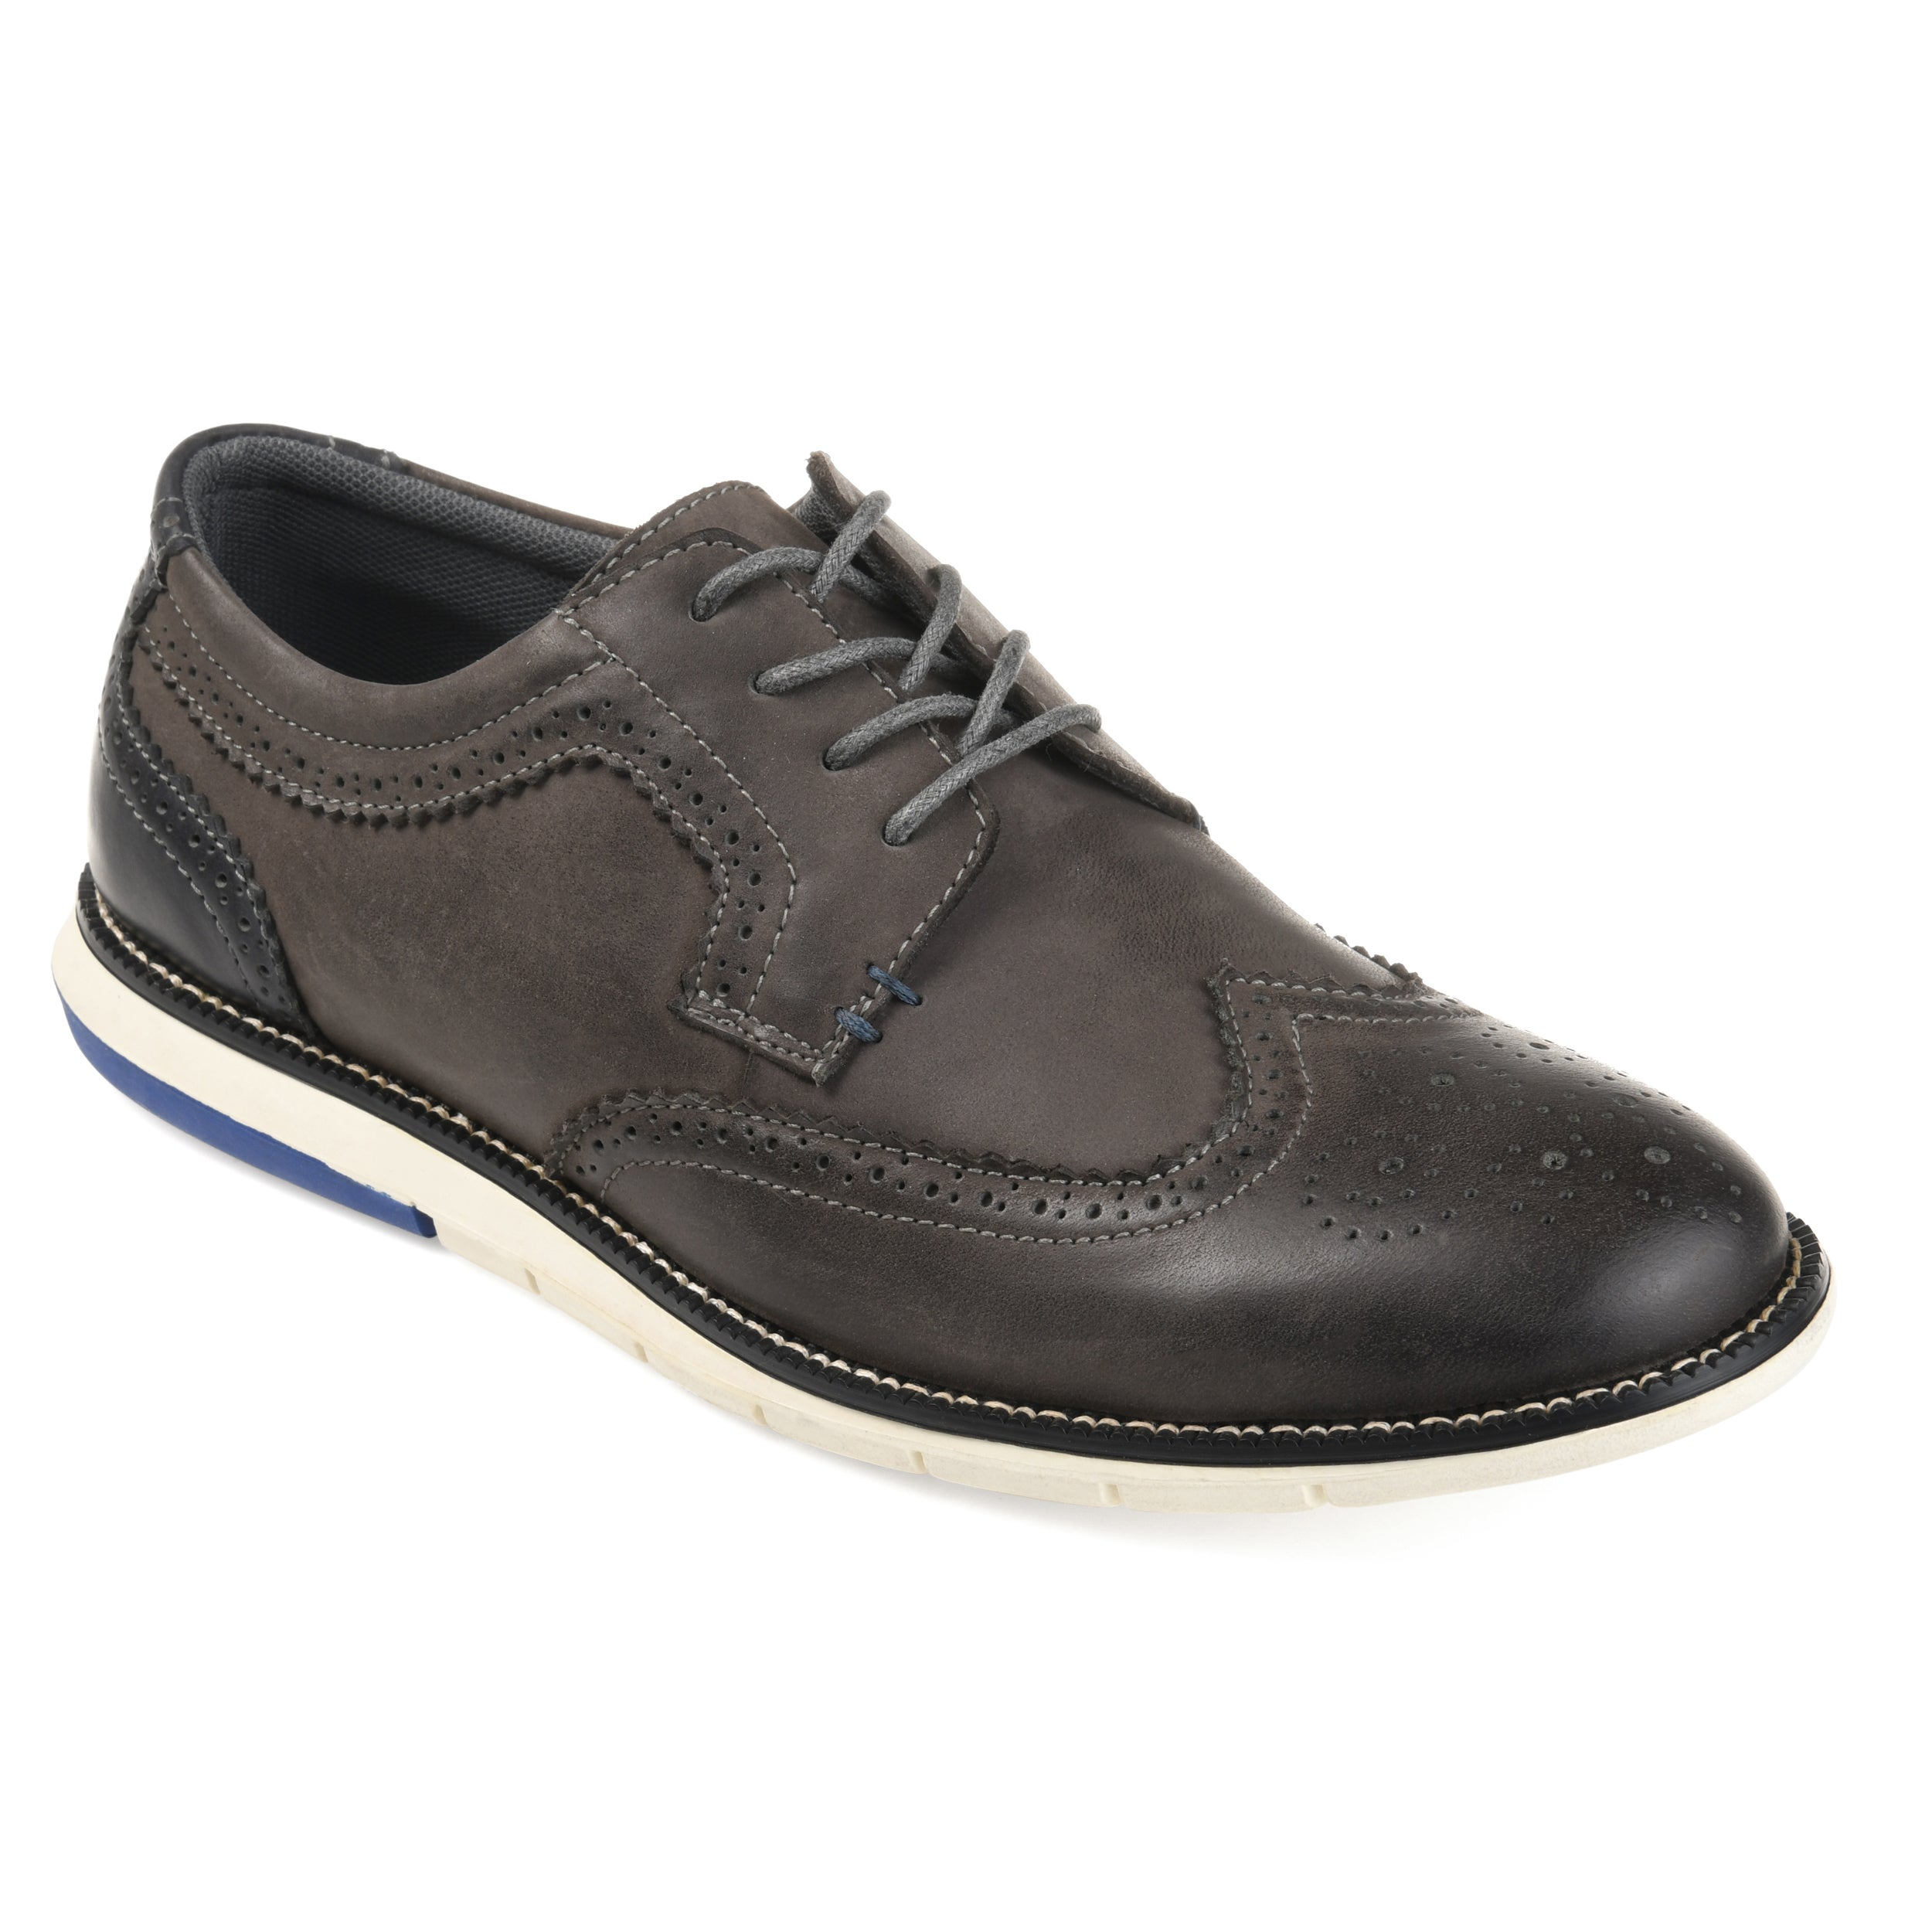 100% top quality on sale online info for Vance Co. Men's 'Drake' Comfort-sole Genuine Leather Wingtip Brogue Dress  Shoes